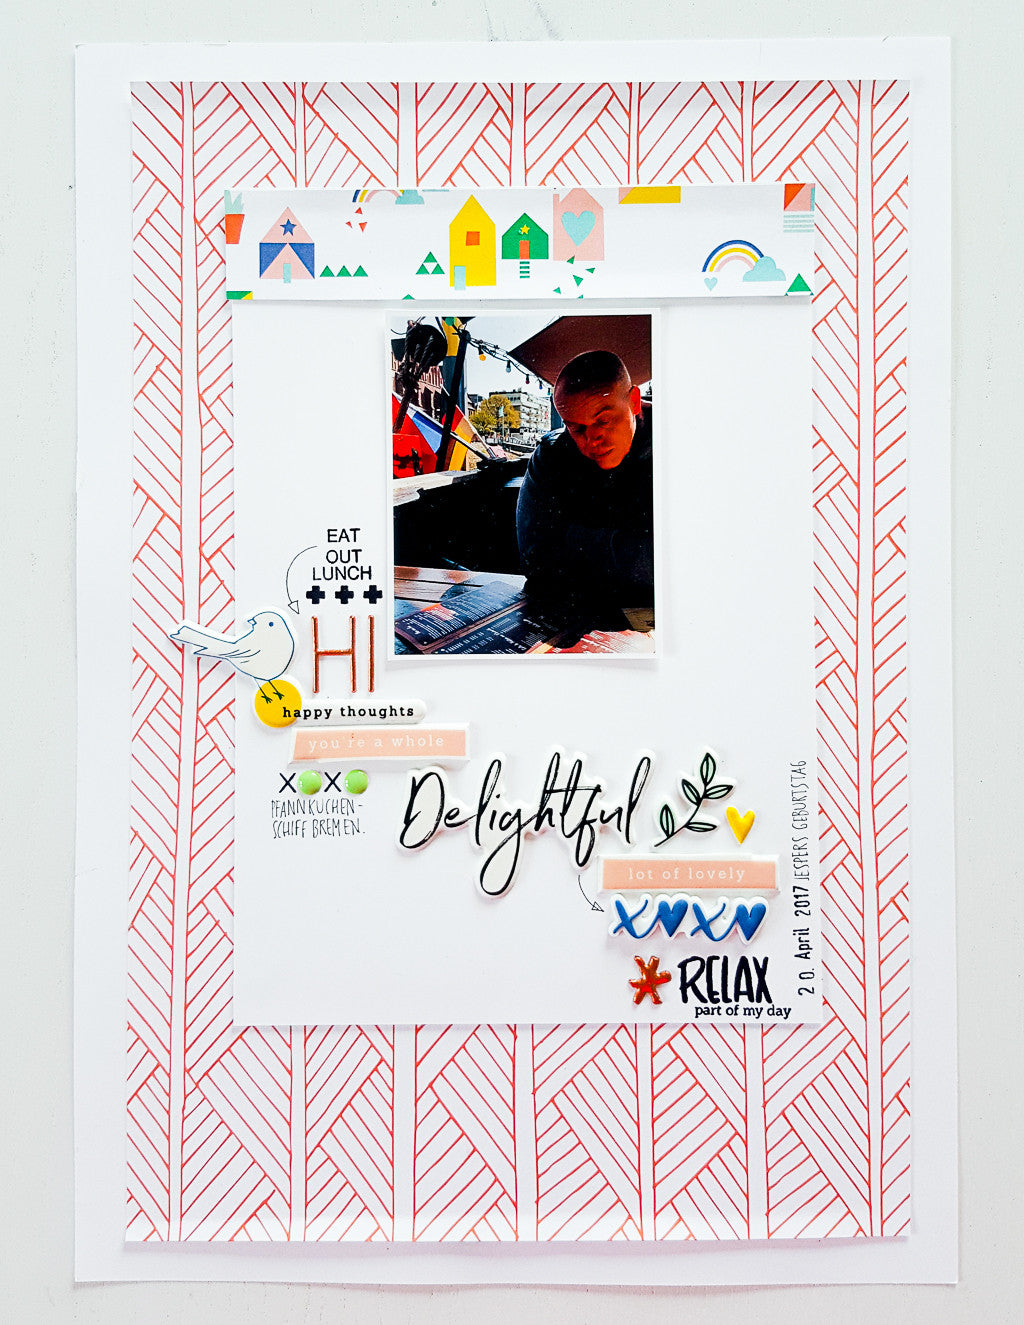 Scrapbooking layouts with Pinkfresh Studio´s papers, embellishments and stamps